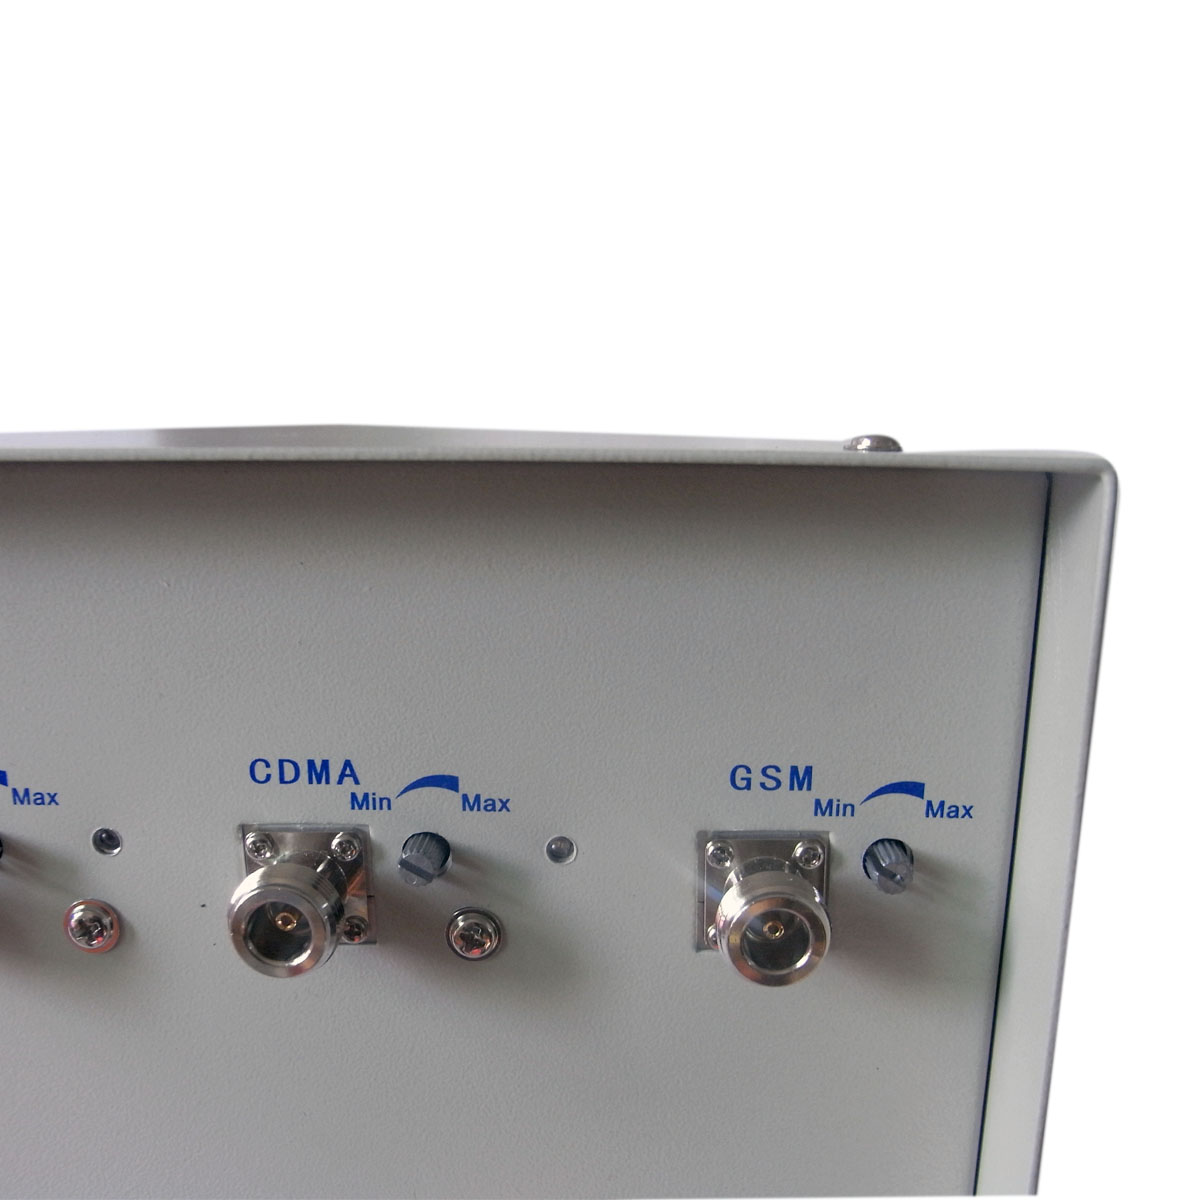 Buy a mobile phone jammer - gsm mobile phone jammer